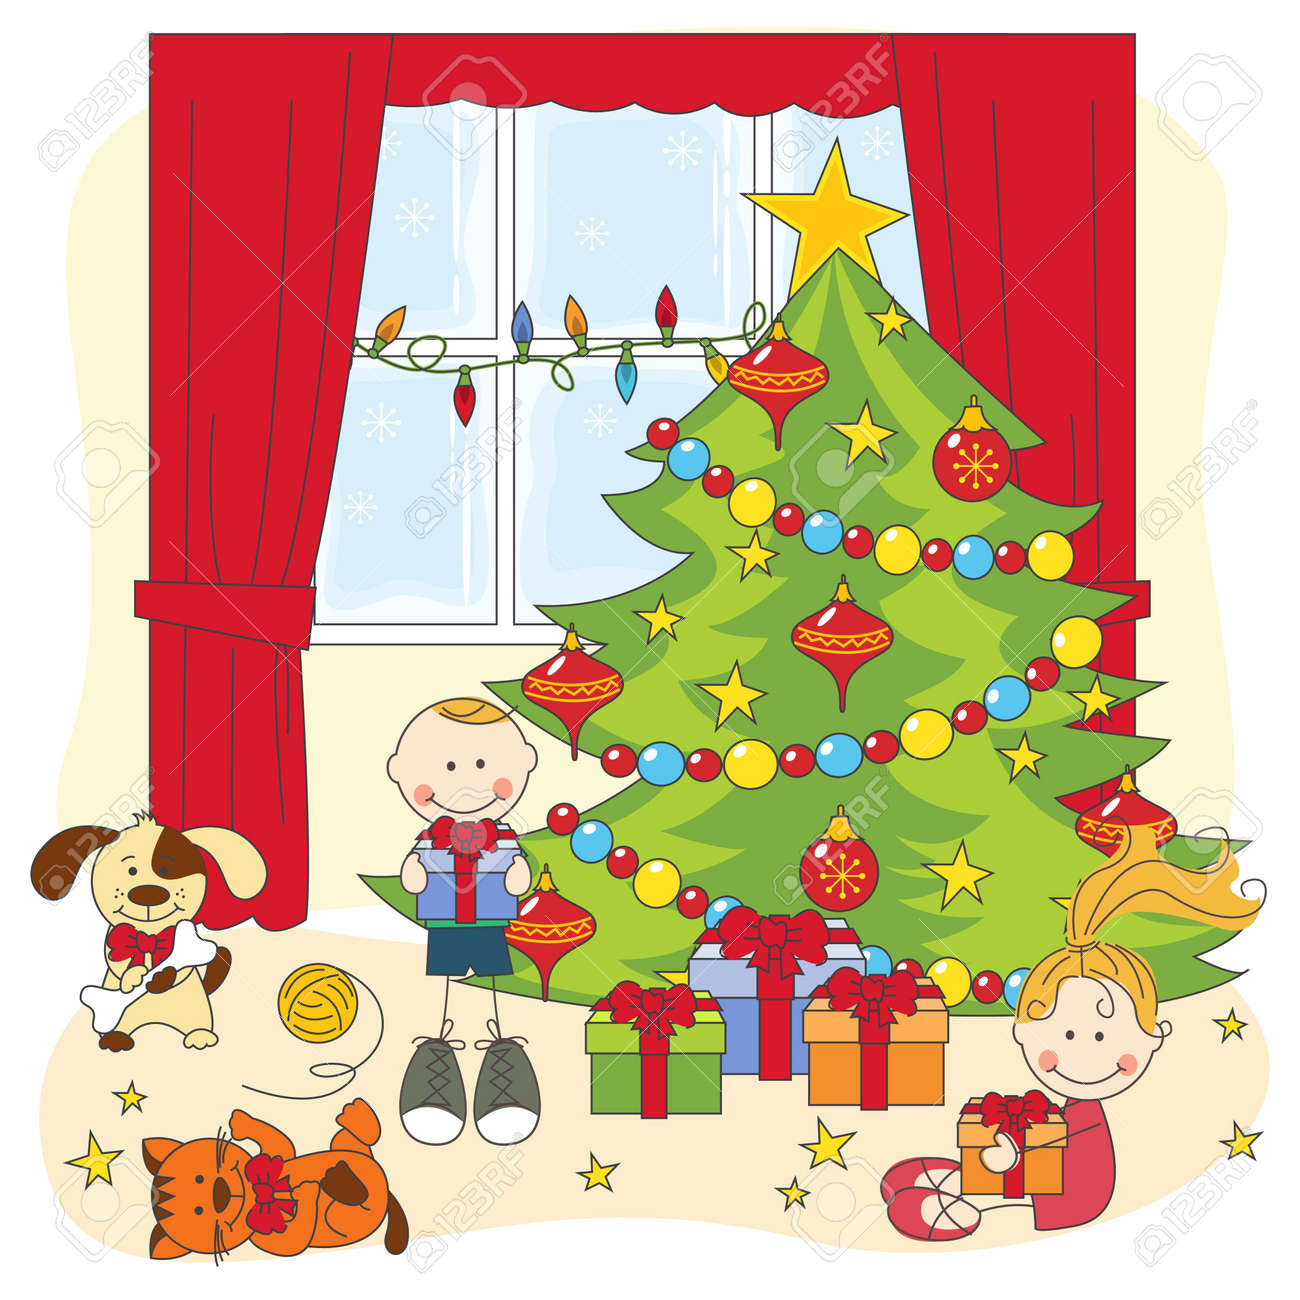 Christmas illustration. Kids opening gifts. Hand drawing. Stock Vector - 16604732